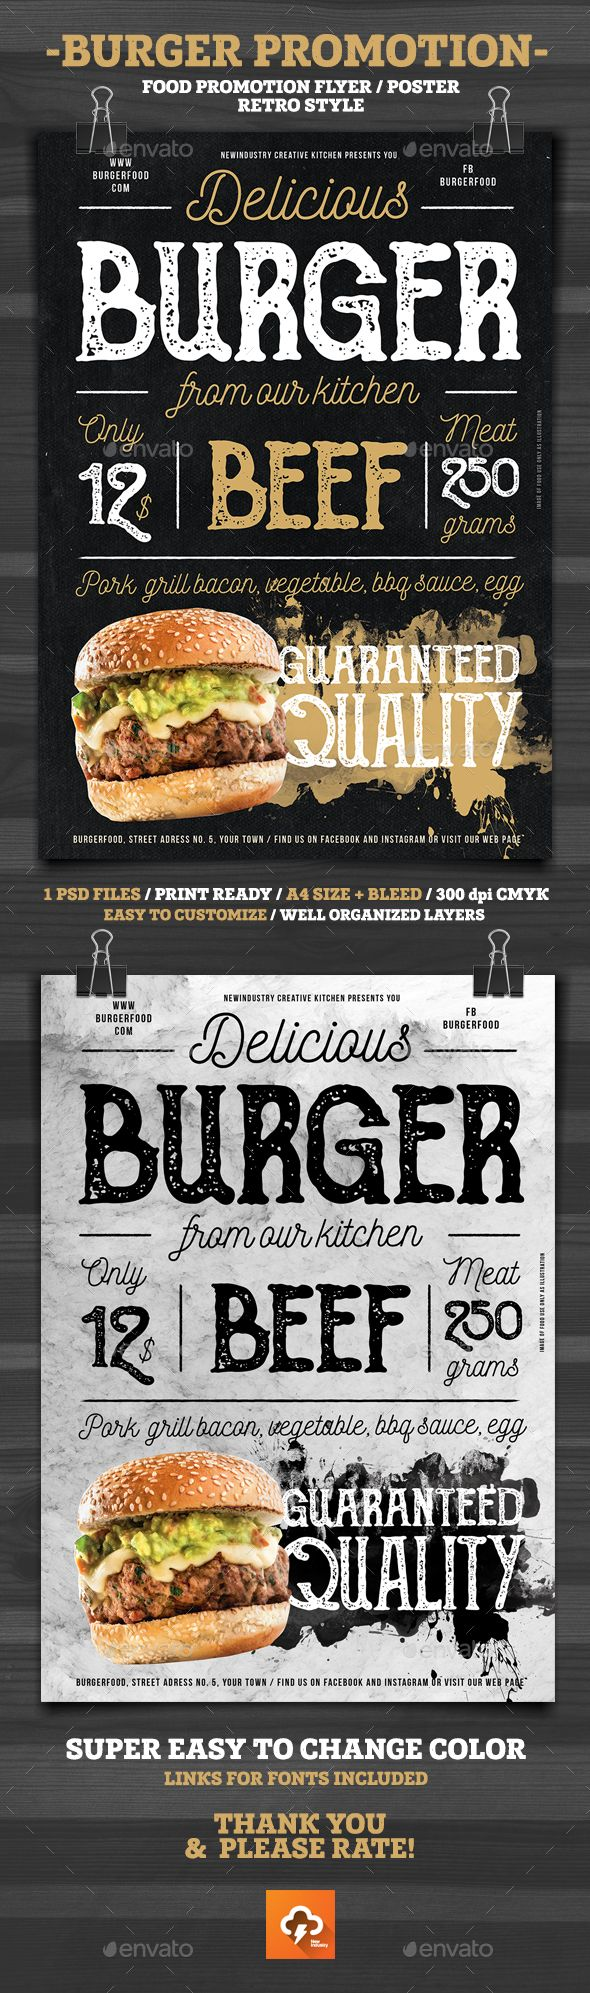 Burger Promotion Flyer Poster — PSD Template #burger #8.3x11.7 • Download ➝ https://graphicriver.net/item/burger-promotion-flyer-poster/18543986?ref=pxcr